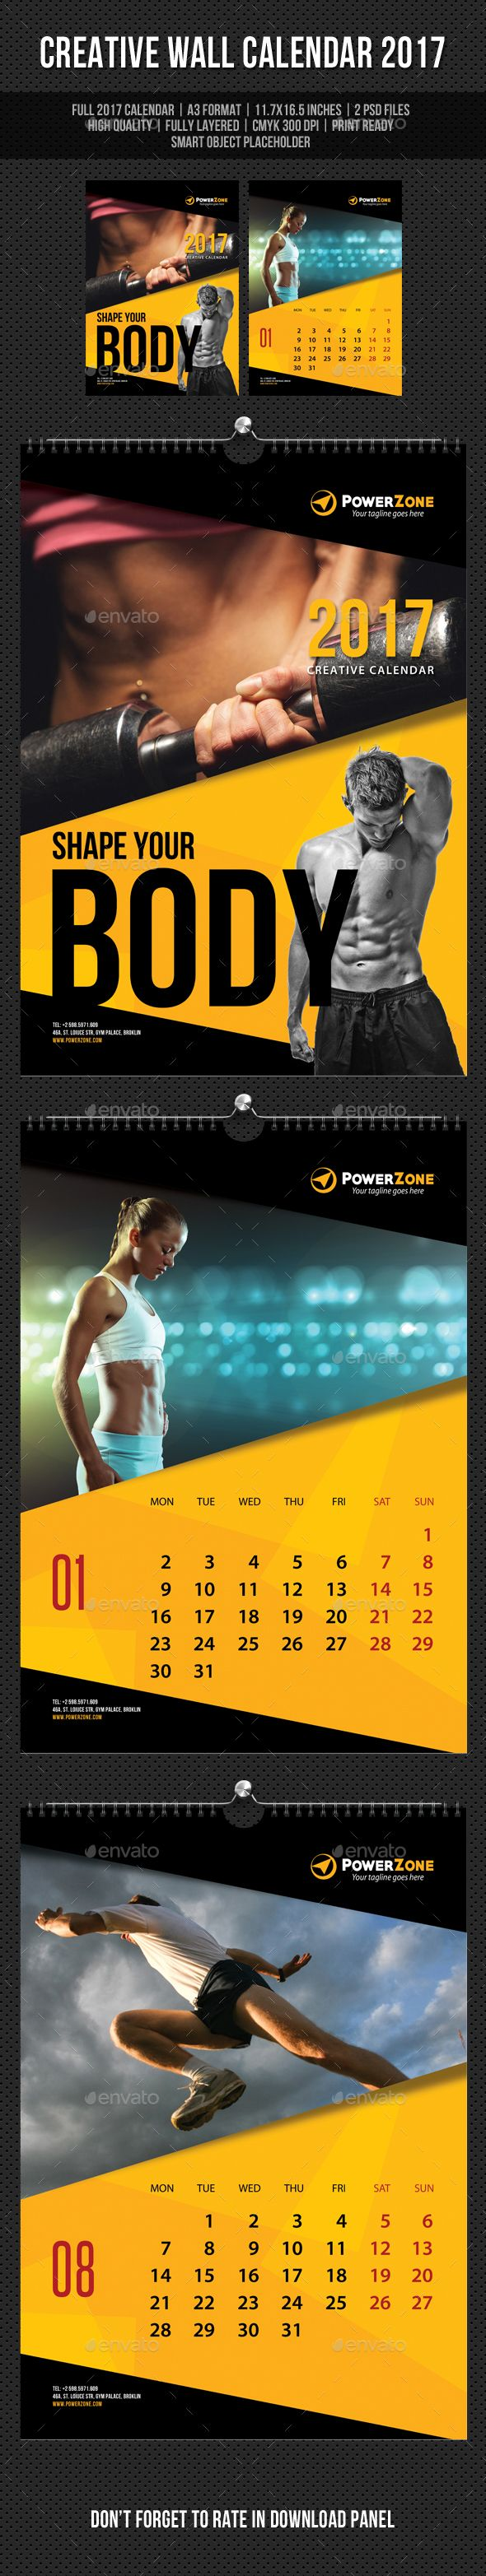 Creative Wall Calendar 2017 Template PSD. Download here: https://graphicriver.net/item/creative-wall-calendar-2017-v09/17265332?ref=ksioks